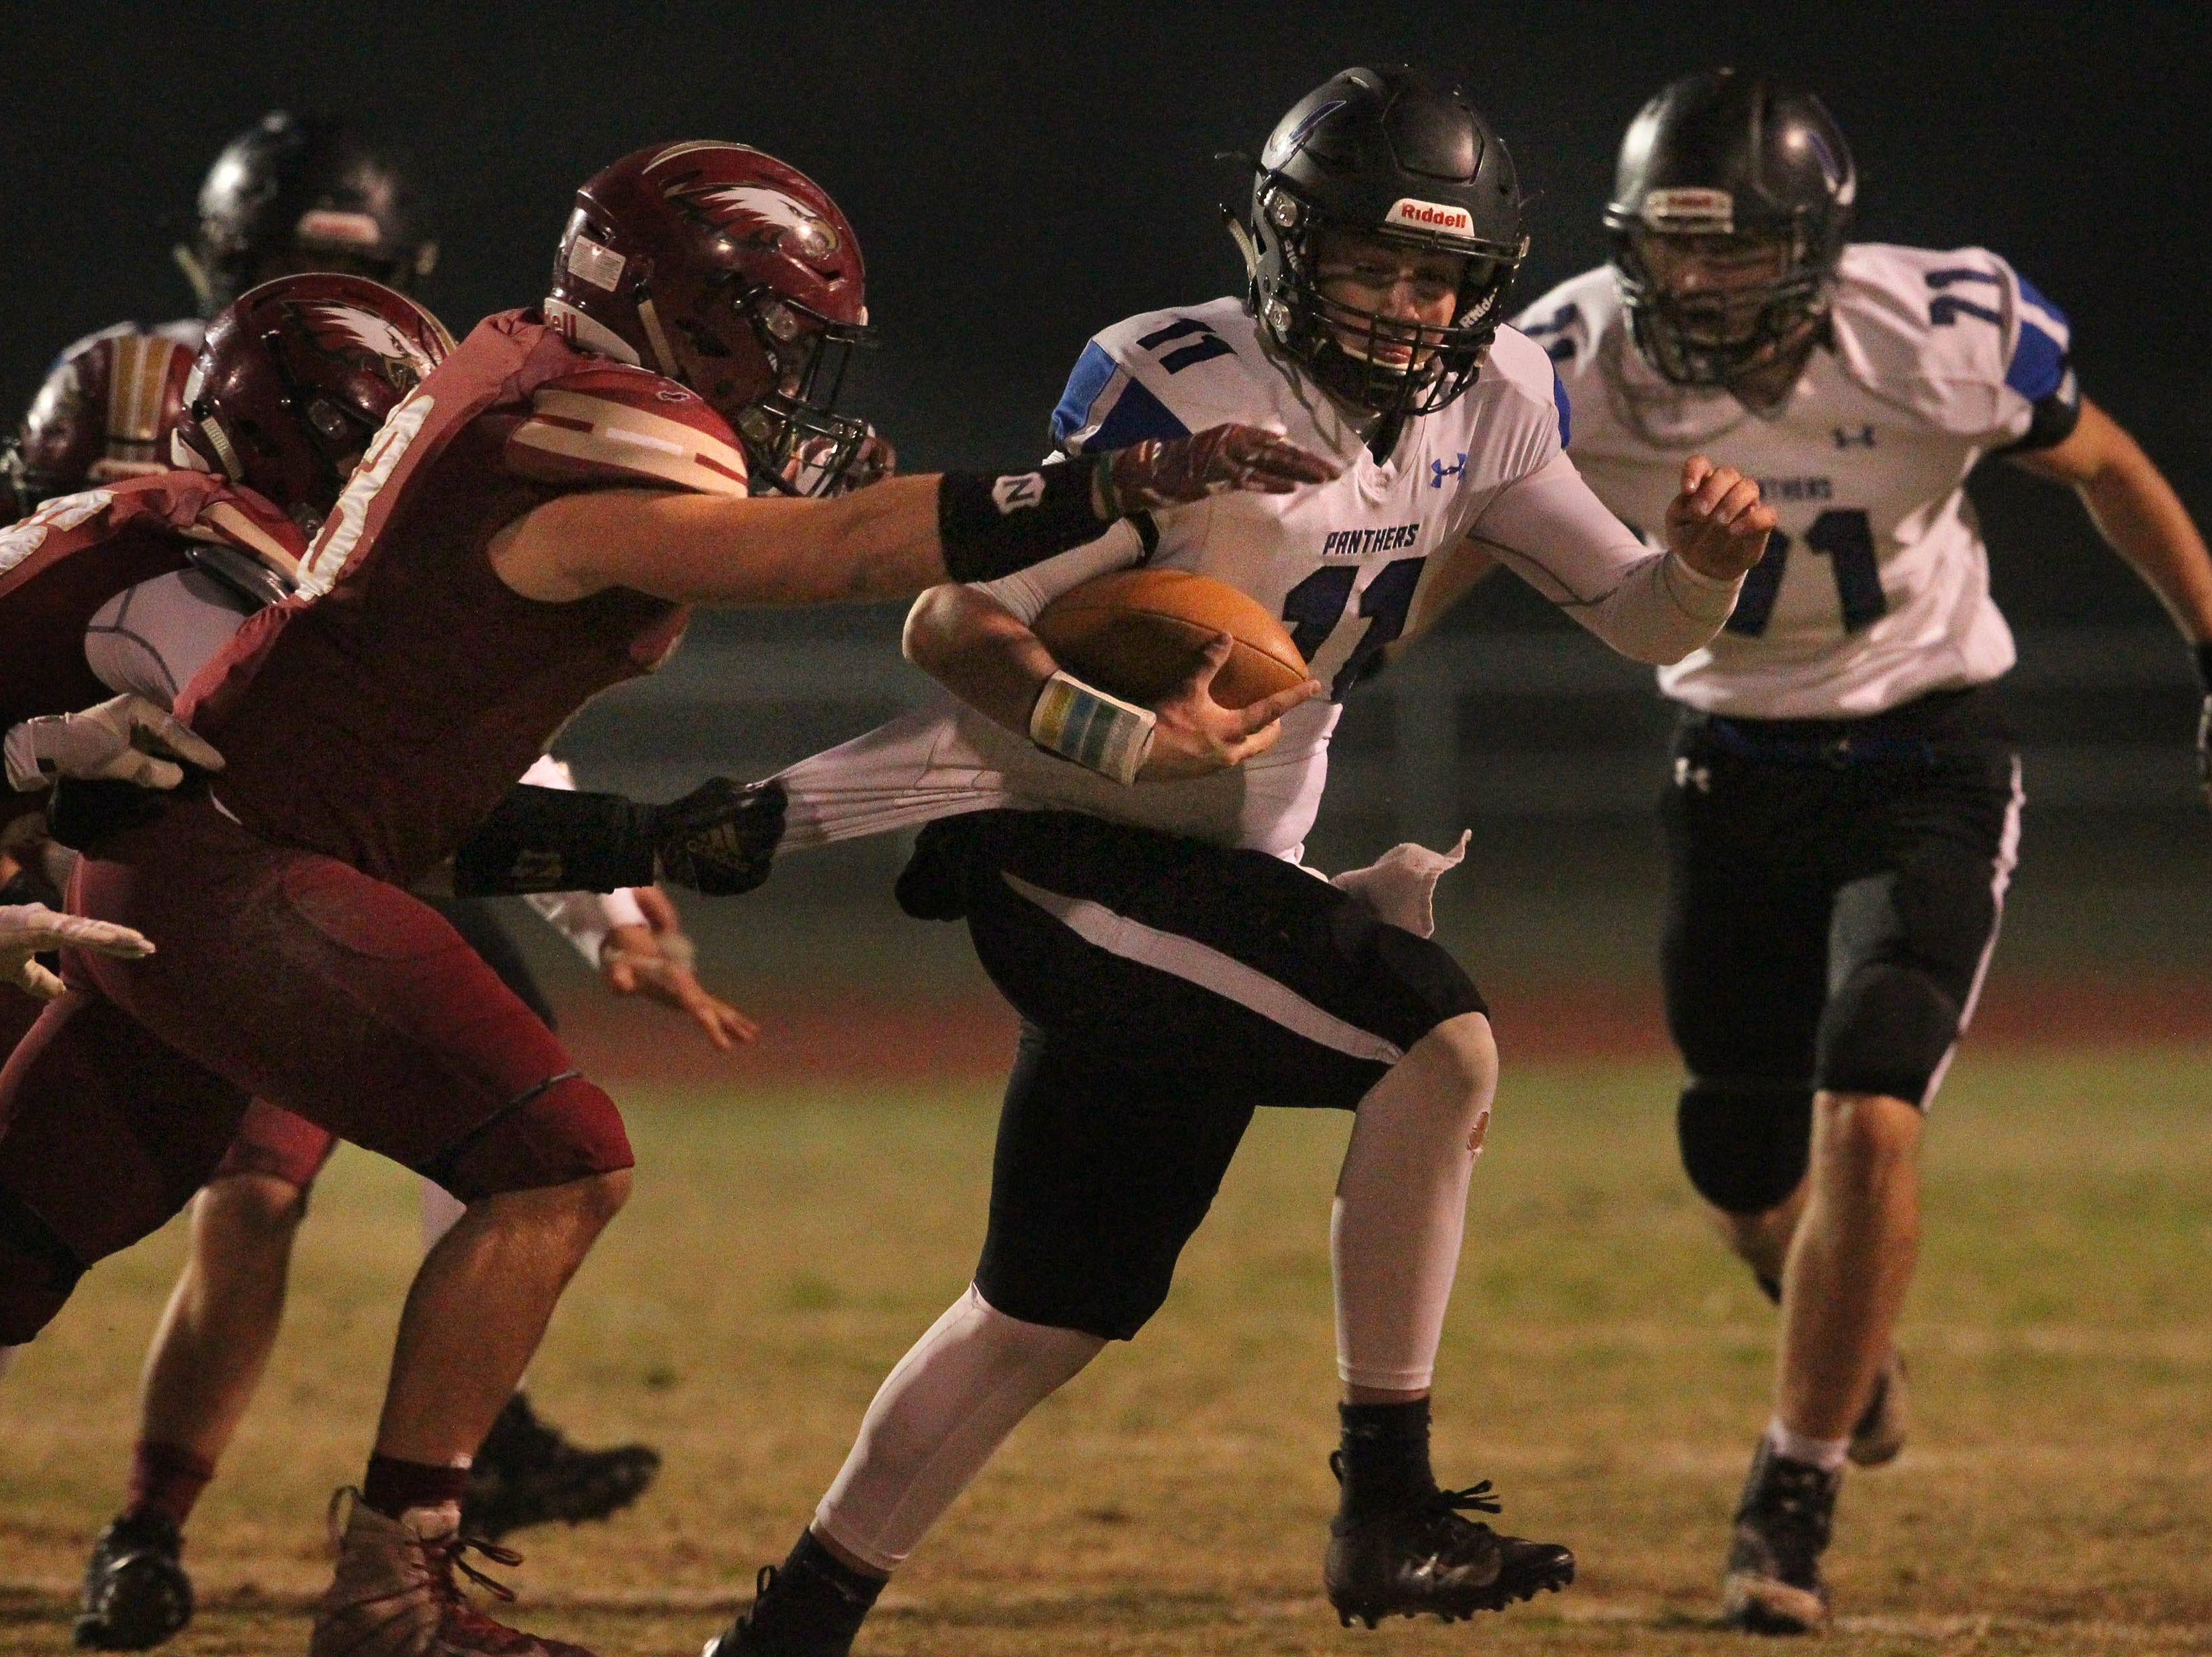 U-prep QB Dylan Cabral (11) tries to break away from West Valley defense on Friday, Nov. 9  The Eagles defeated the Panthers, 55 -6, at home to advance to the 2nd round against Lassen on Nov. 16.